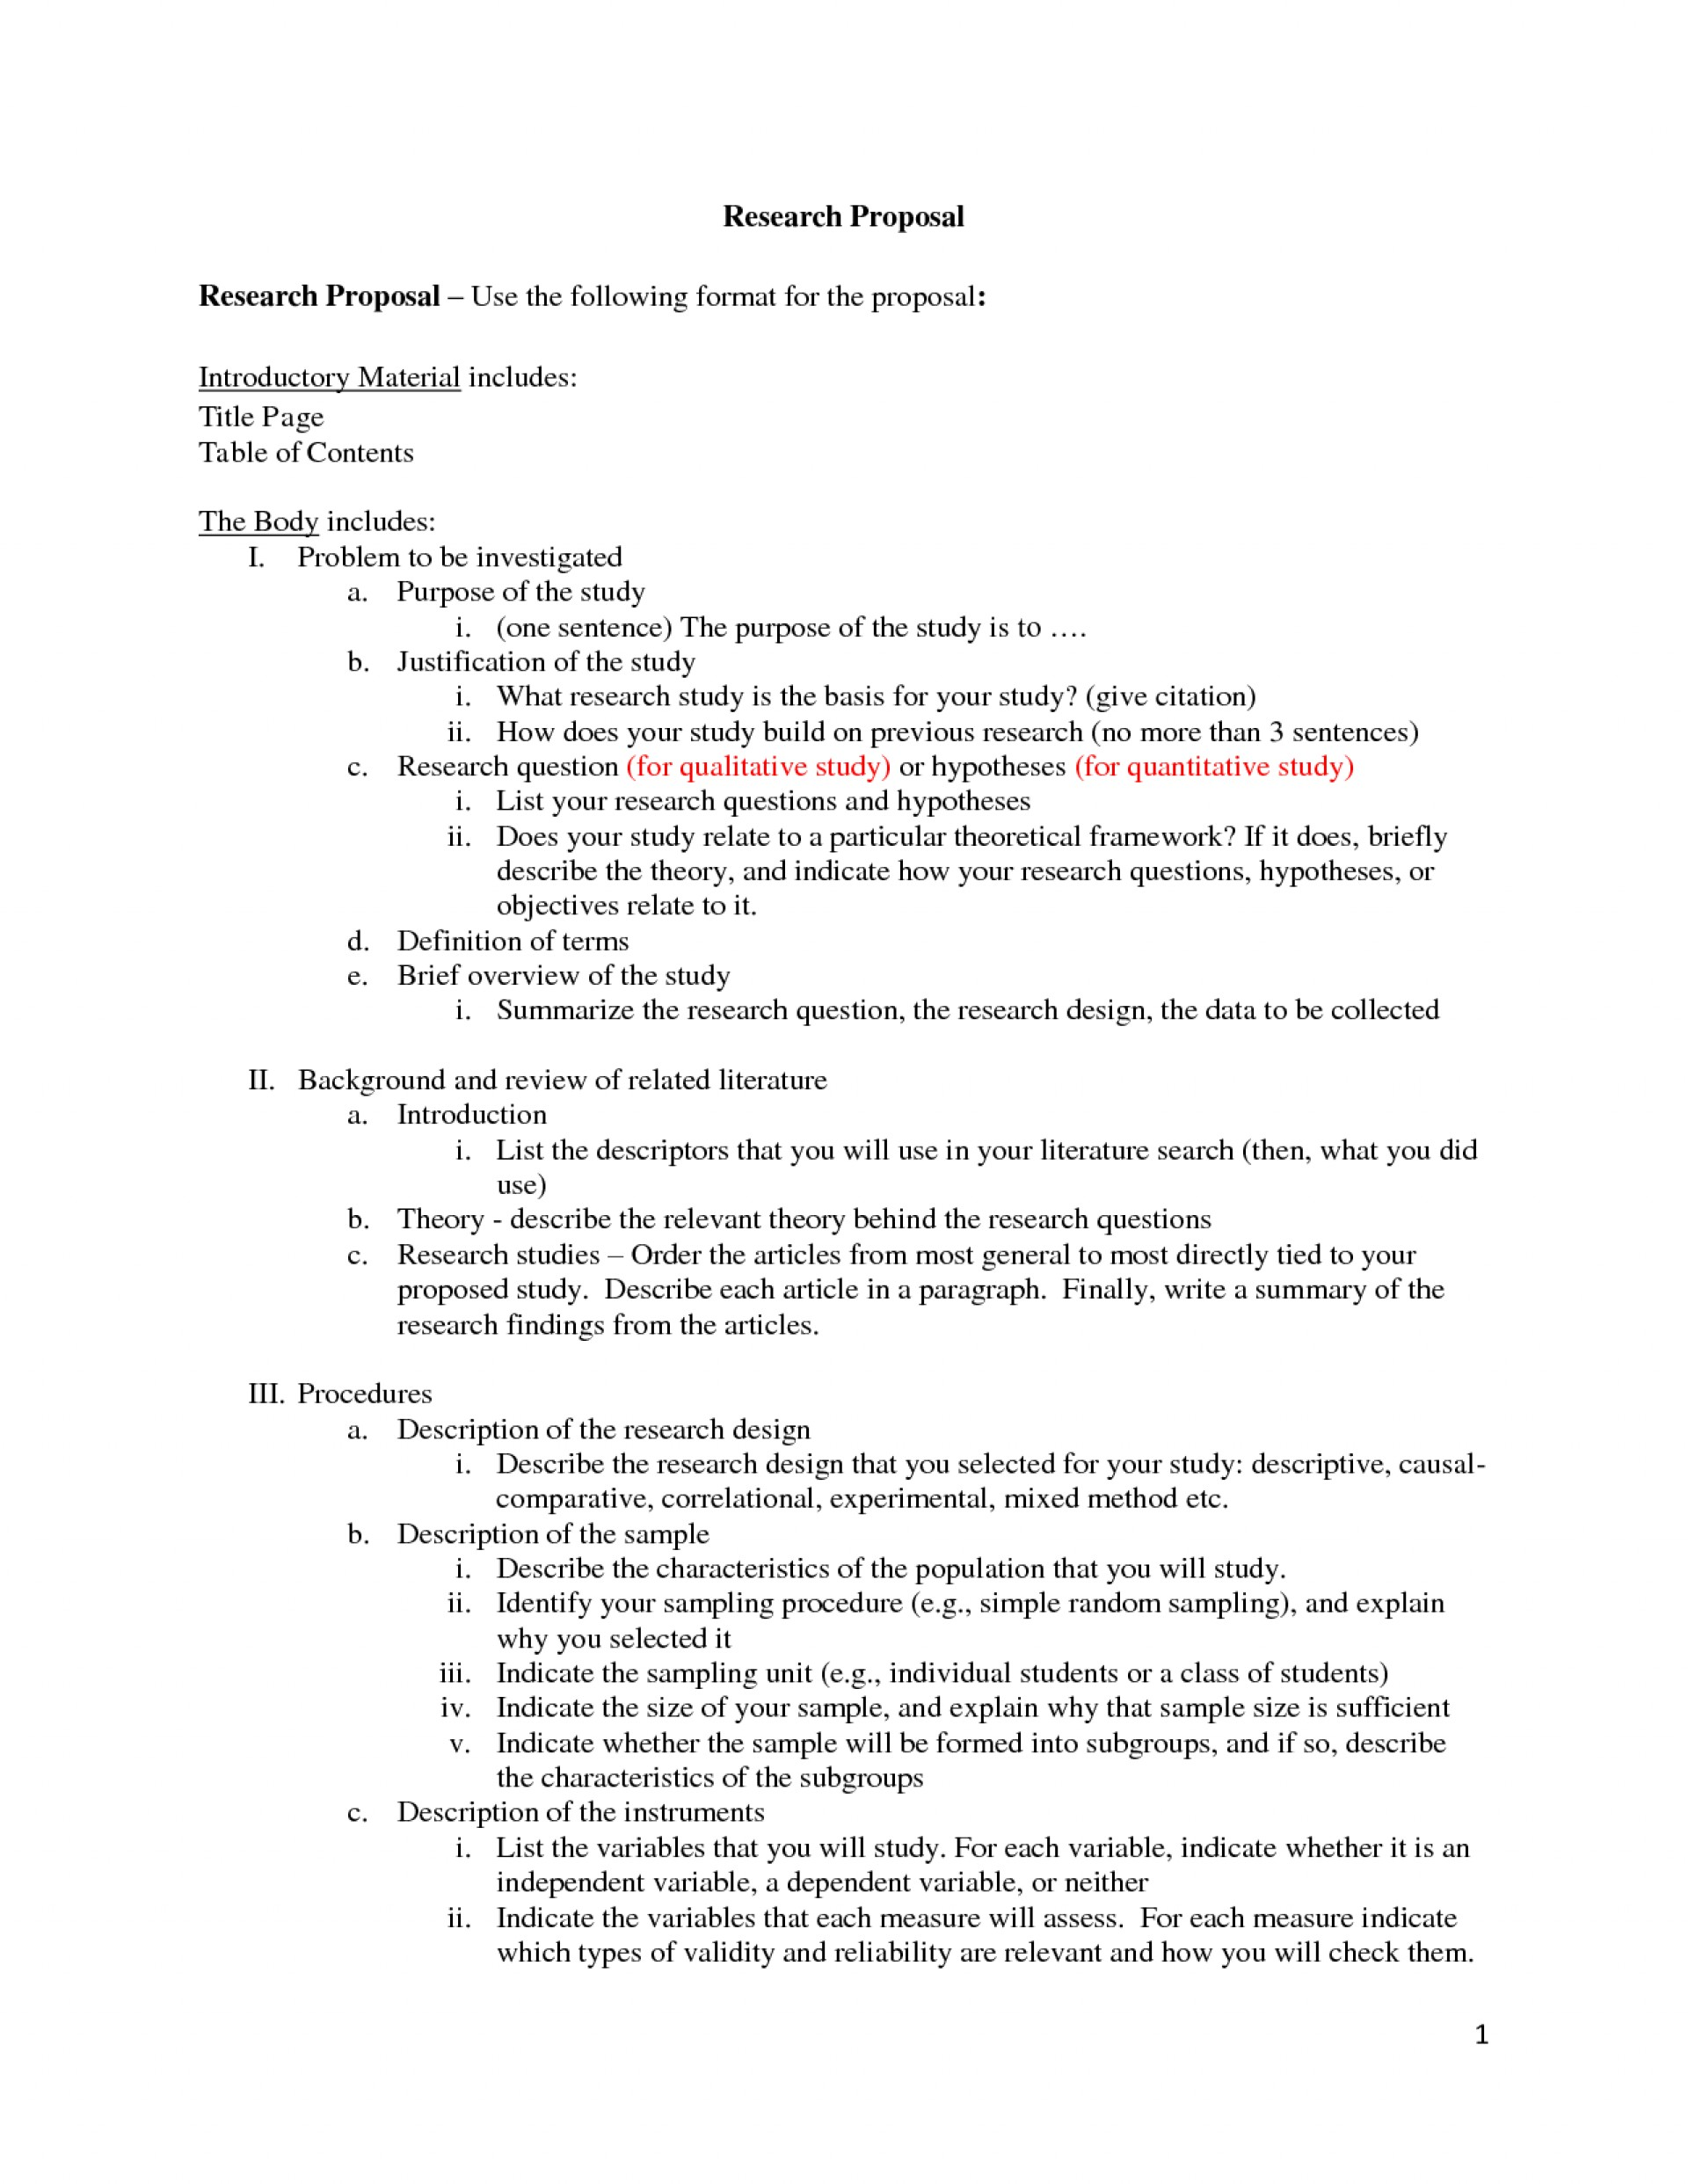 015 College Essay Format Apa Timiz Conceptzmusic Co How To Do Outline Research Proposal 4 Write Application Best Style Layout Paper Reflection 1920